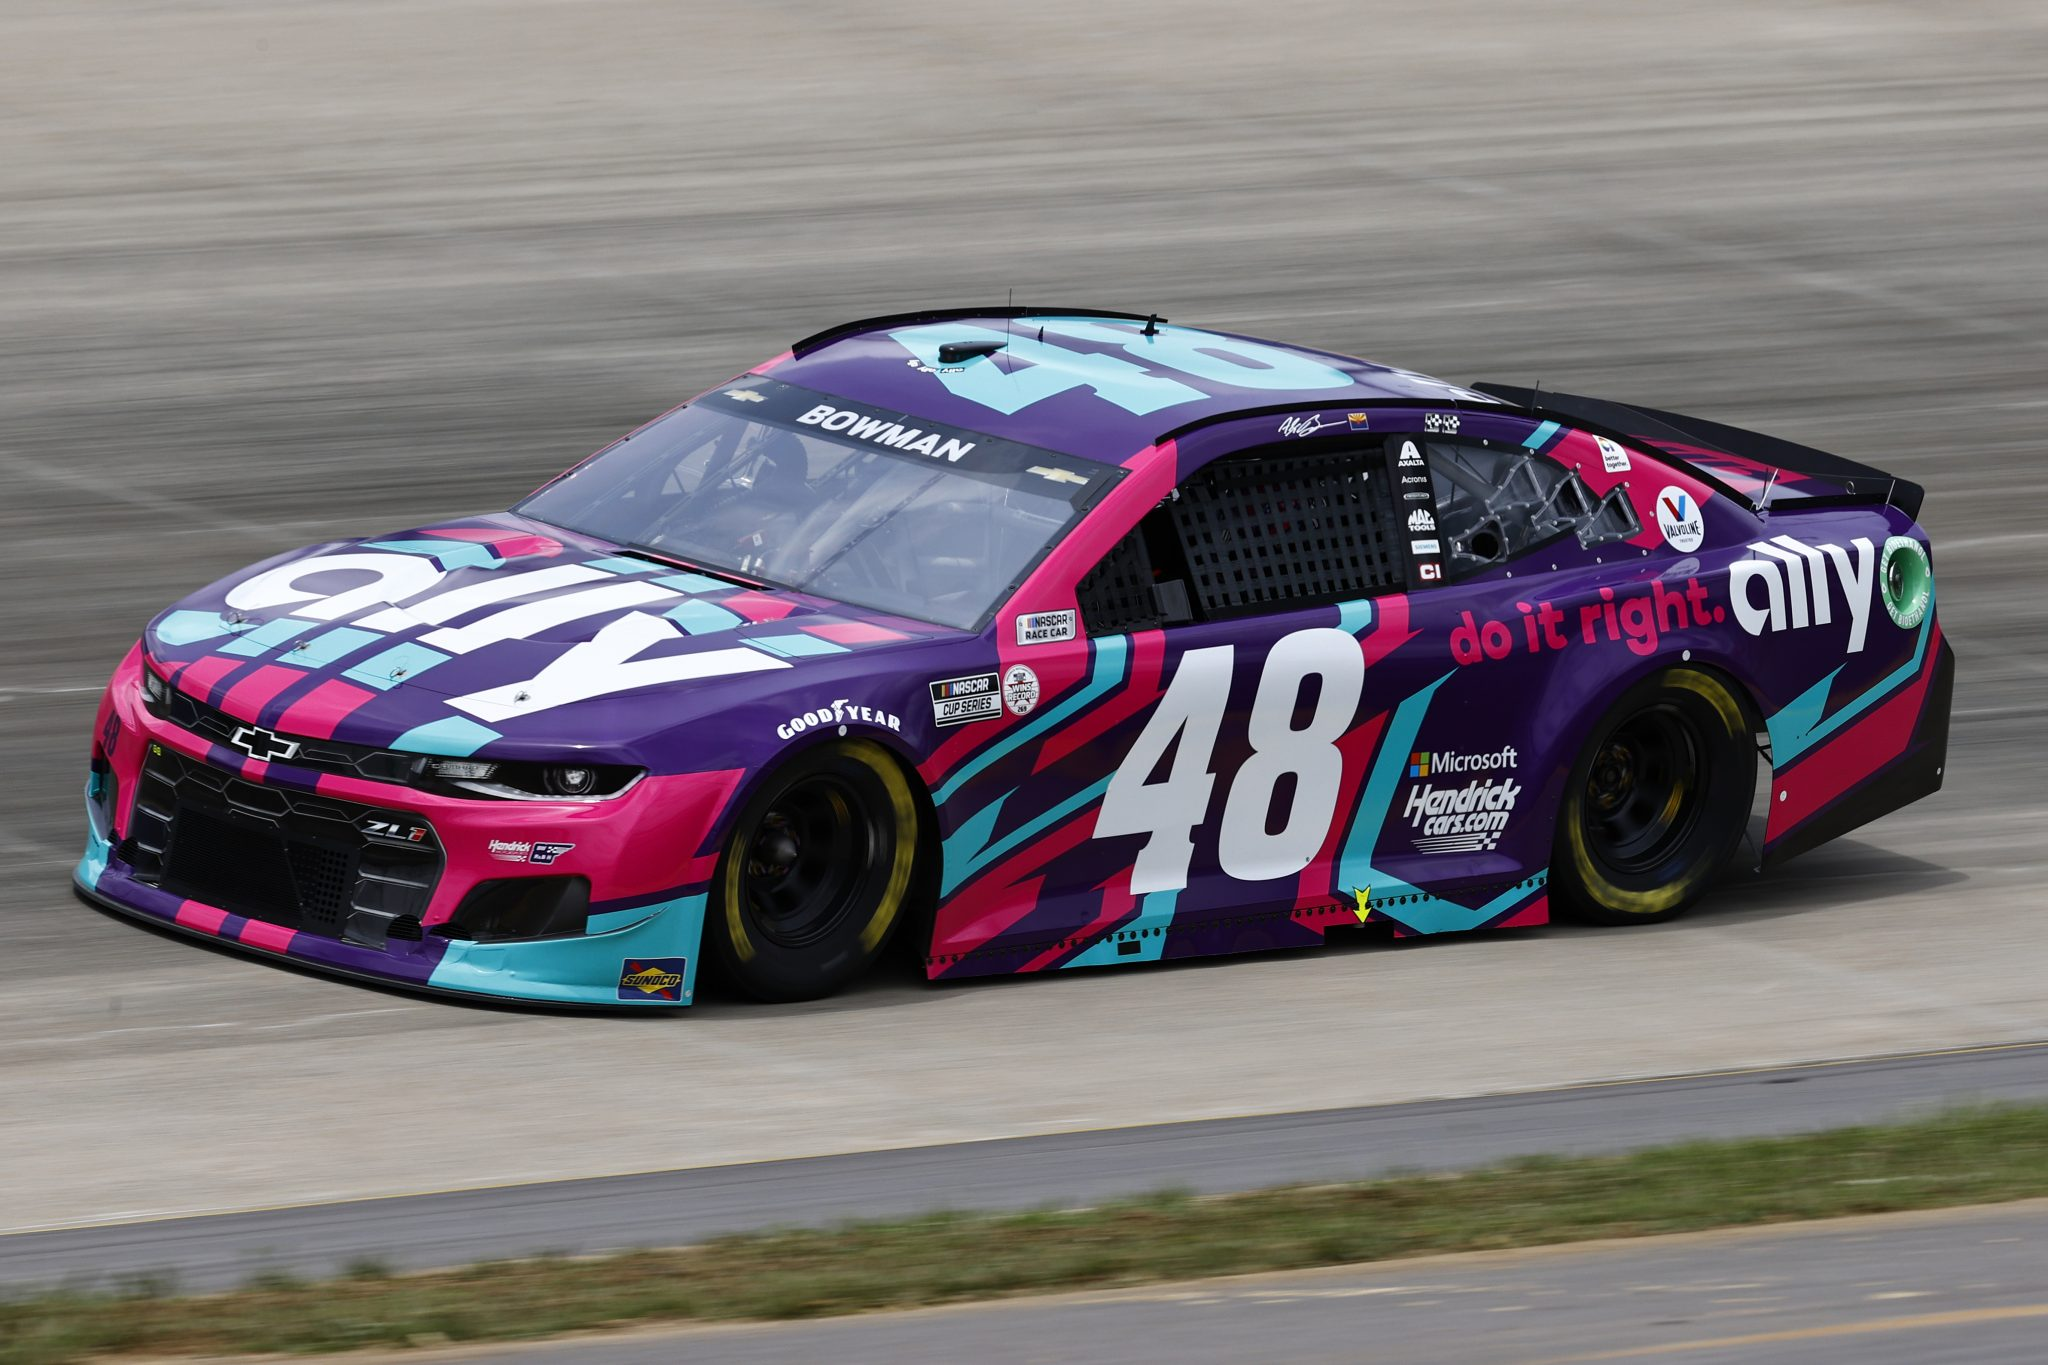 LEBANON, TENNESSEE - JUNE 19: Alex Bowman, driver of the #48 Ally Neon Lights Chevrolet, drives during practice for the NASCAR Cup Series Ally 400 at Nashville Superspeedway on June 19, 2021 in Lebanon, Tennessee. (Photo by Jared C. Tilton/Getty Images) | Getty Images